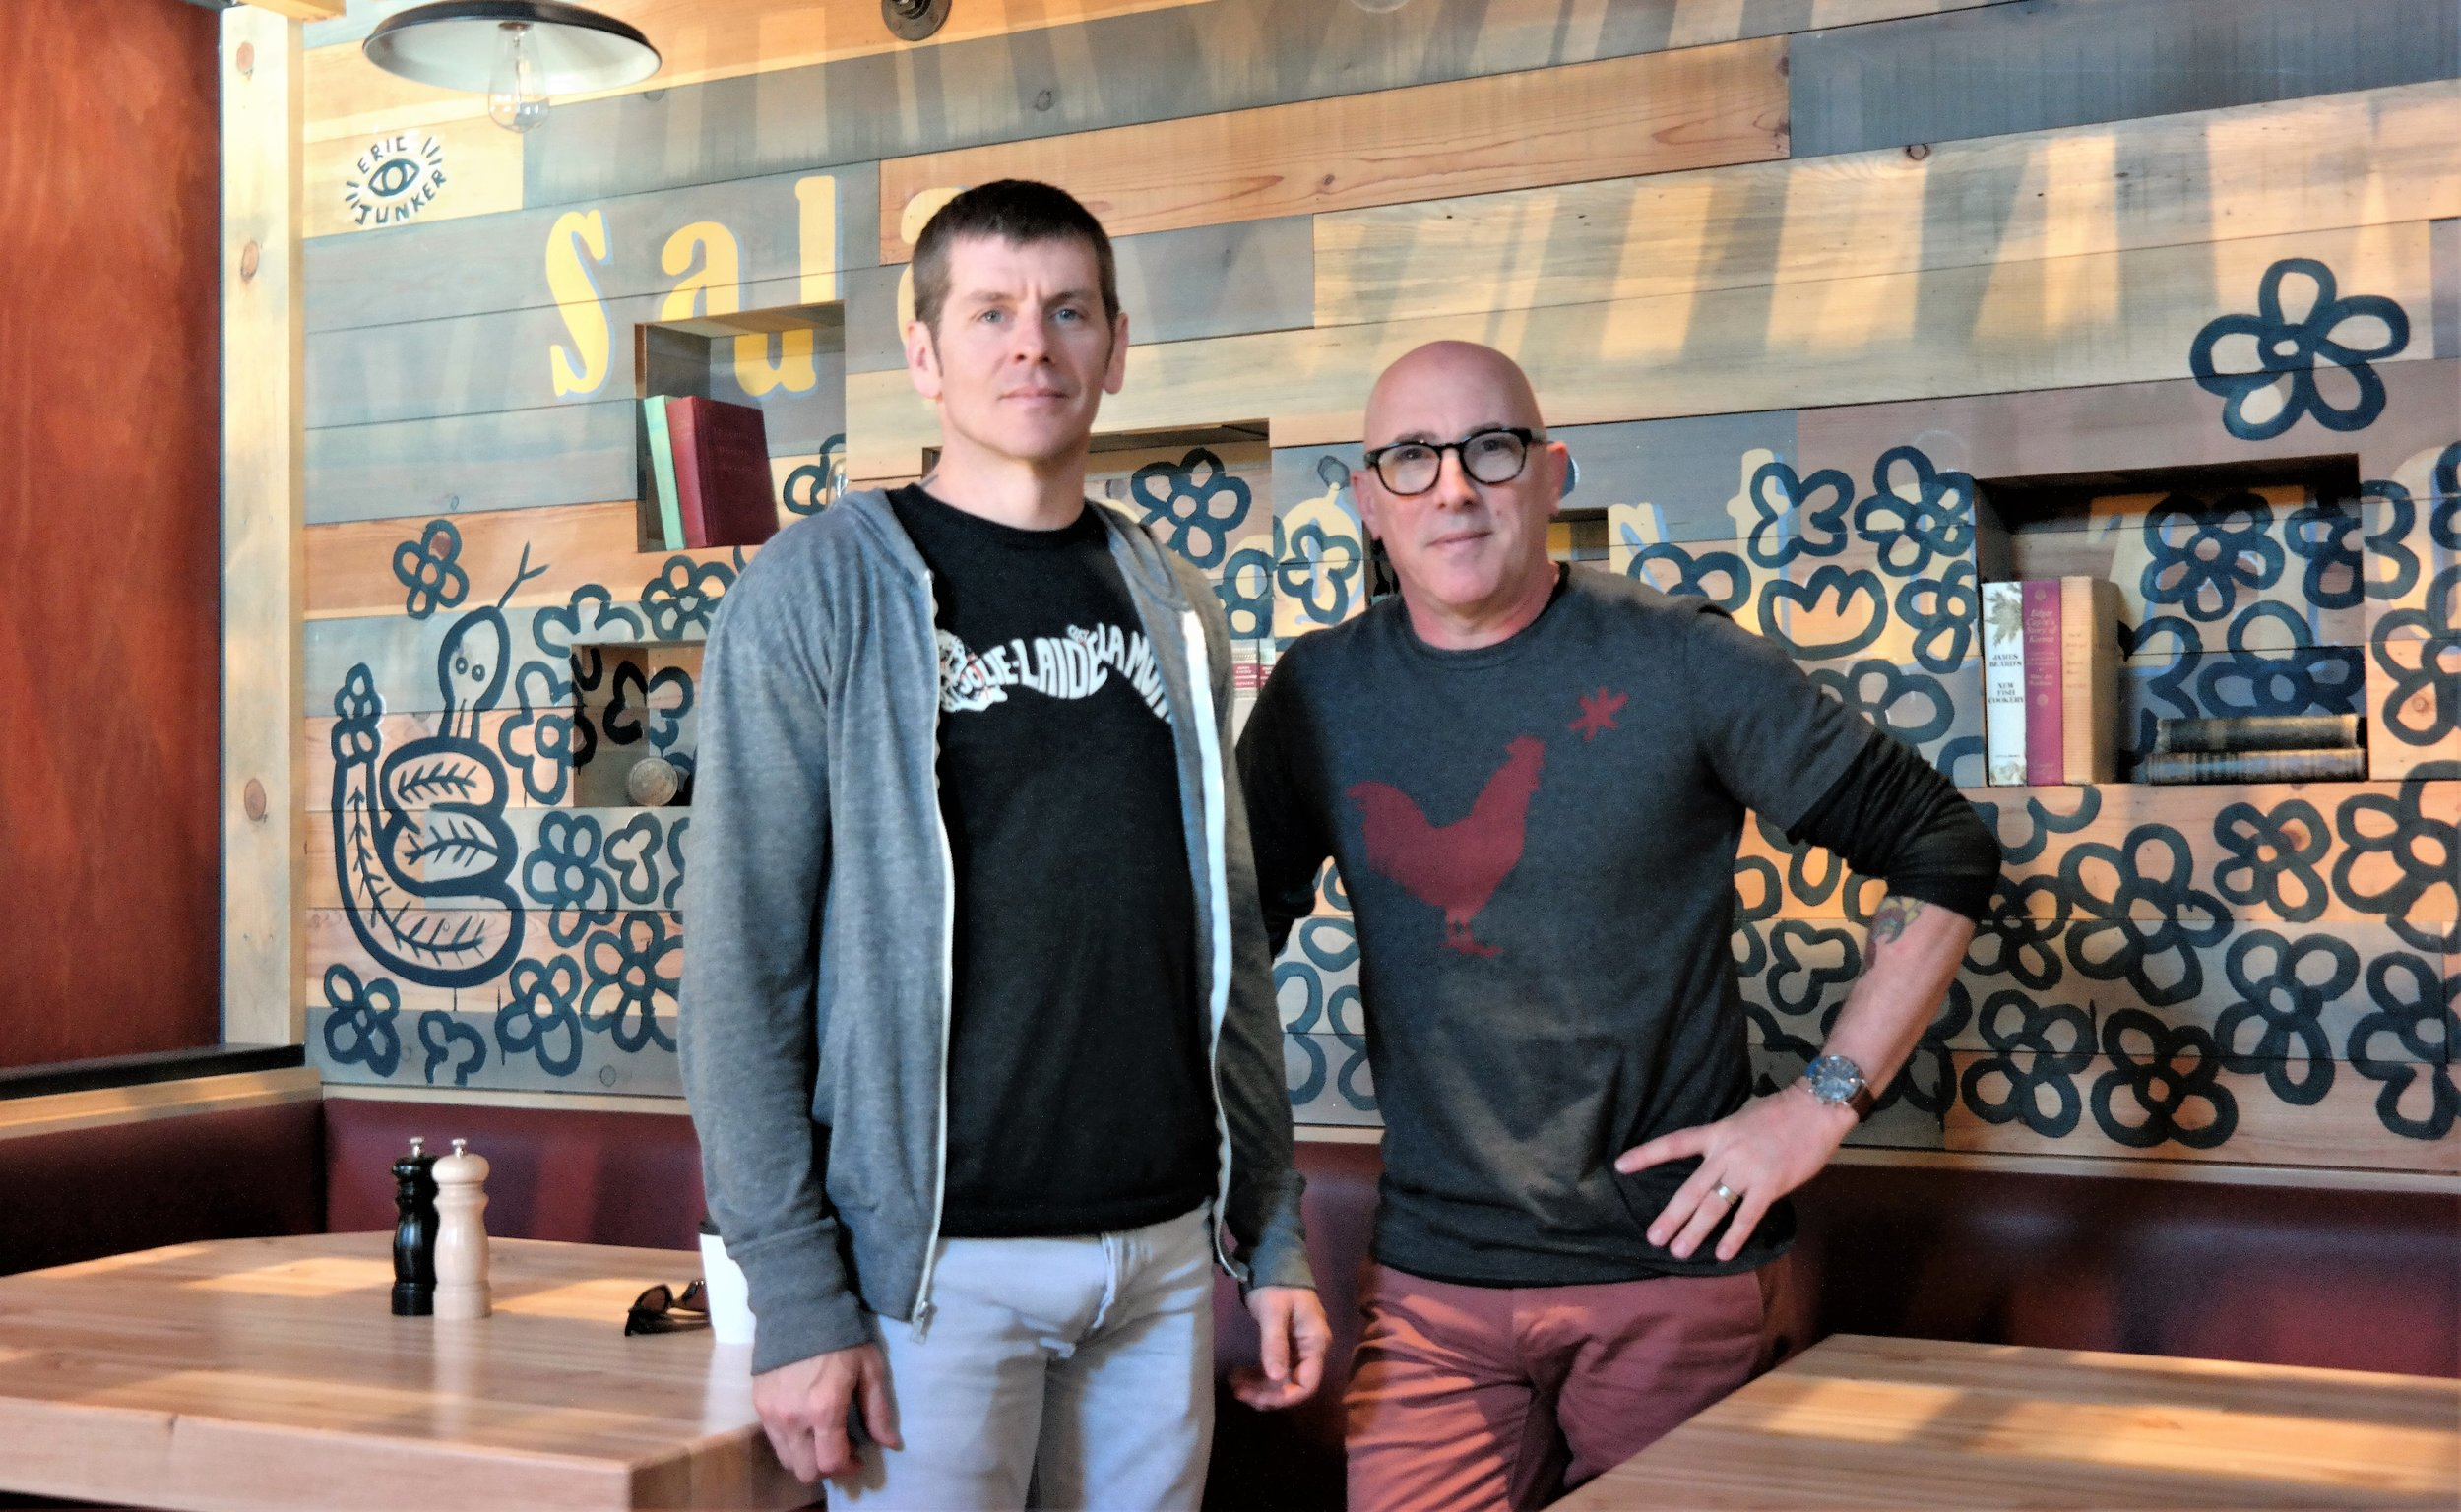 Co-winemaker Tim White and Maynard Keenan at Merkin Osteria in Cottonwood